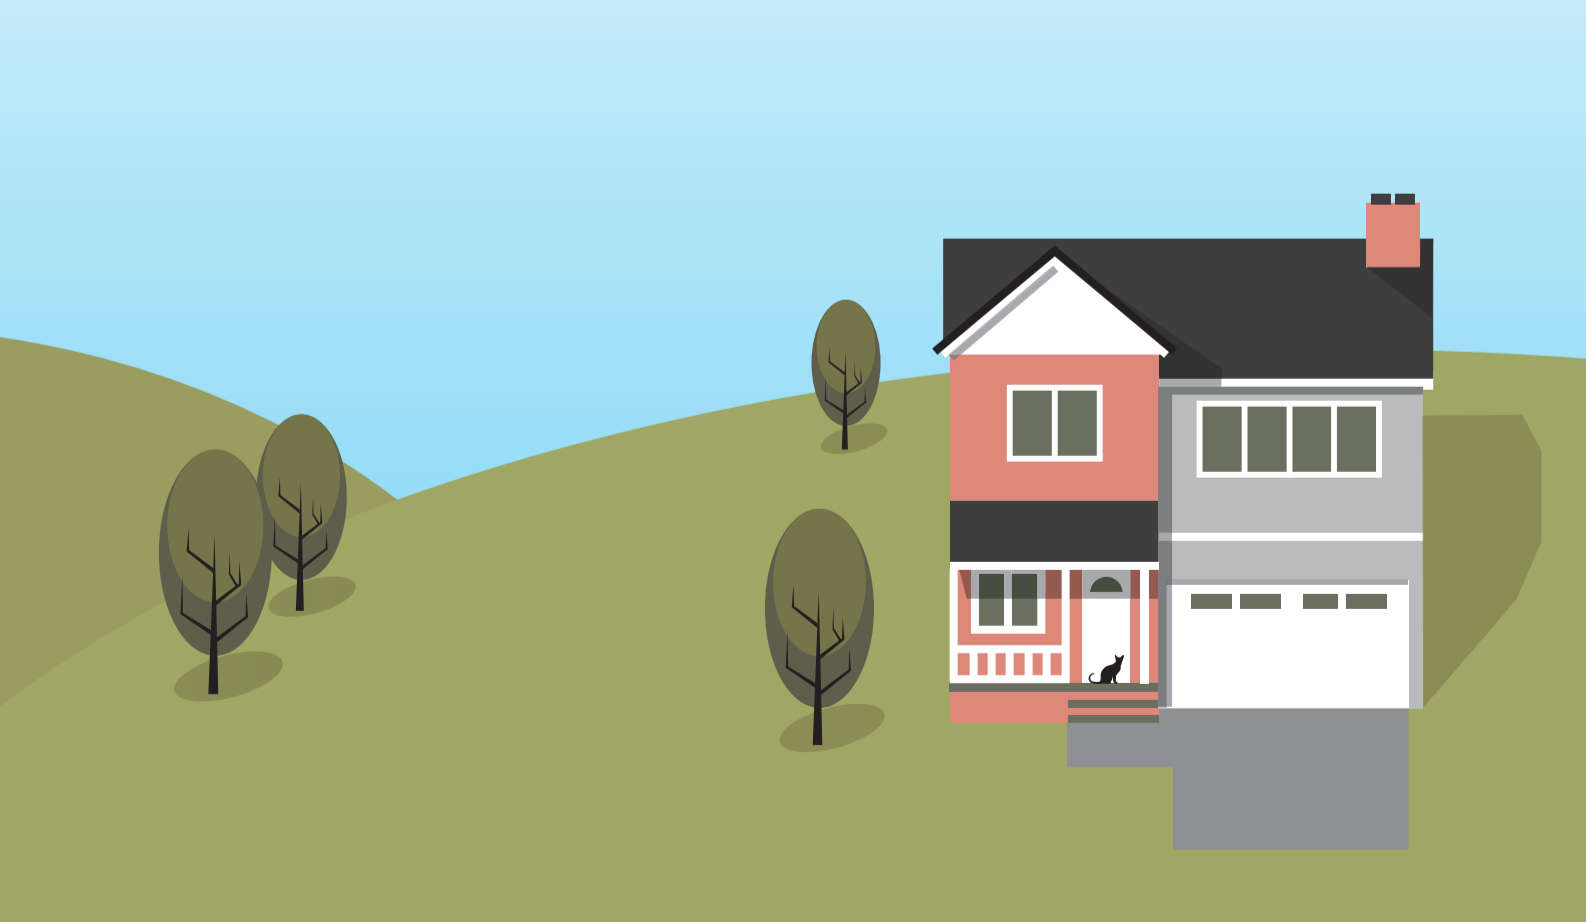 Property with septic tank illustration